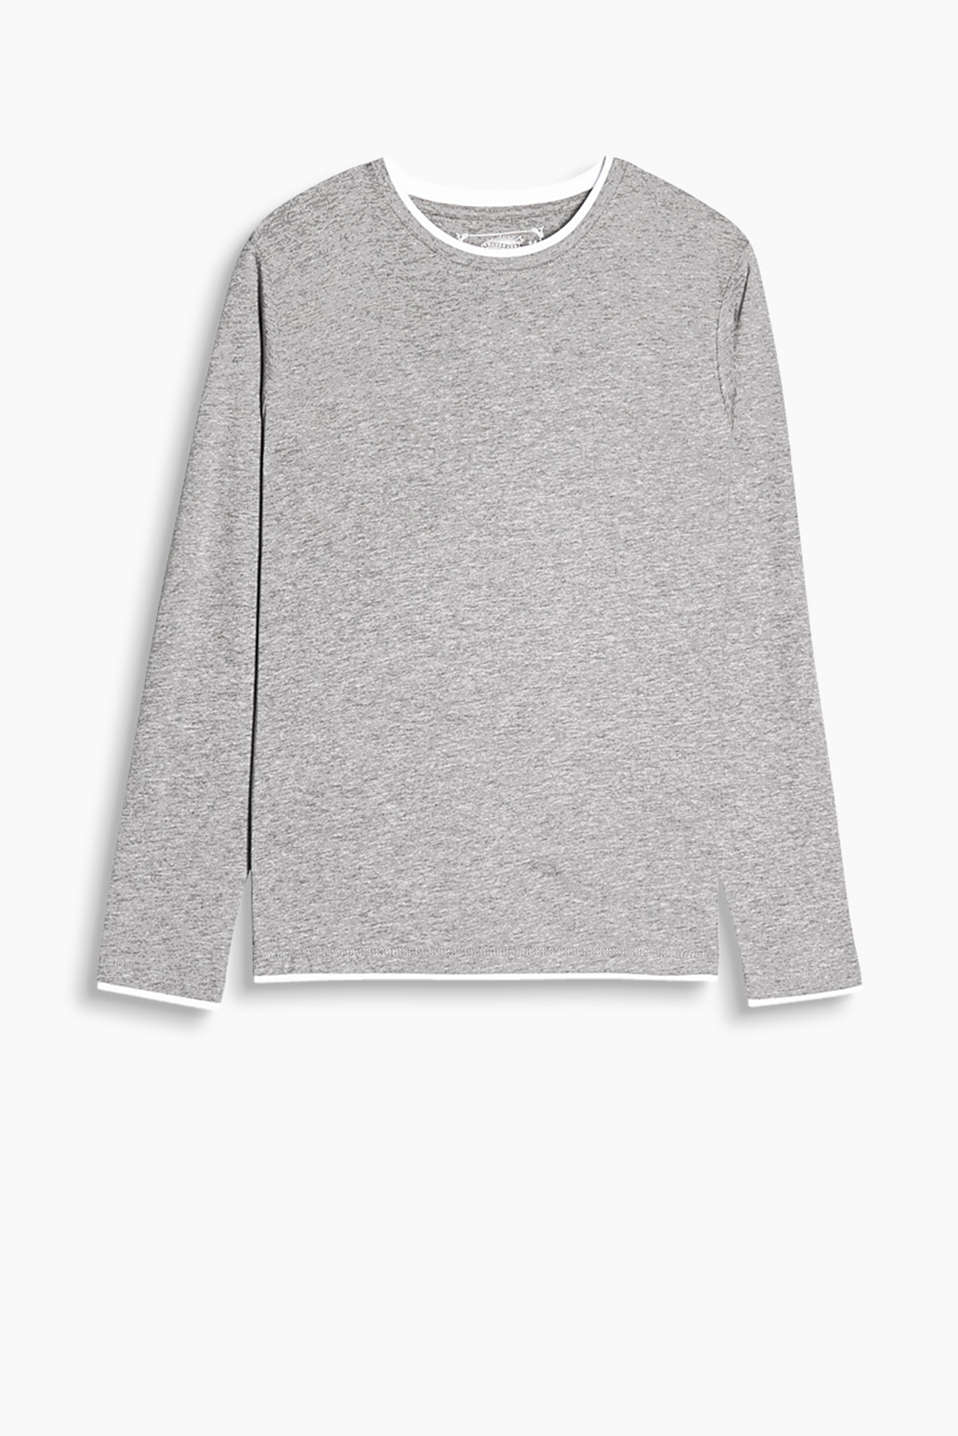 Long sleeve Henley top in soft blended cotton with a layered effect at the round neckline